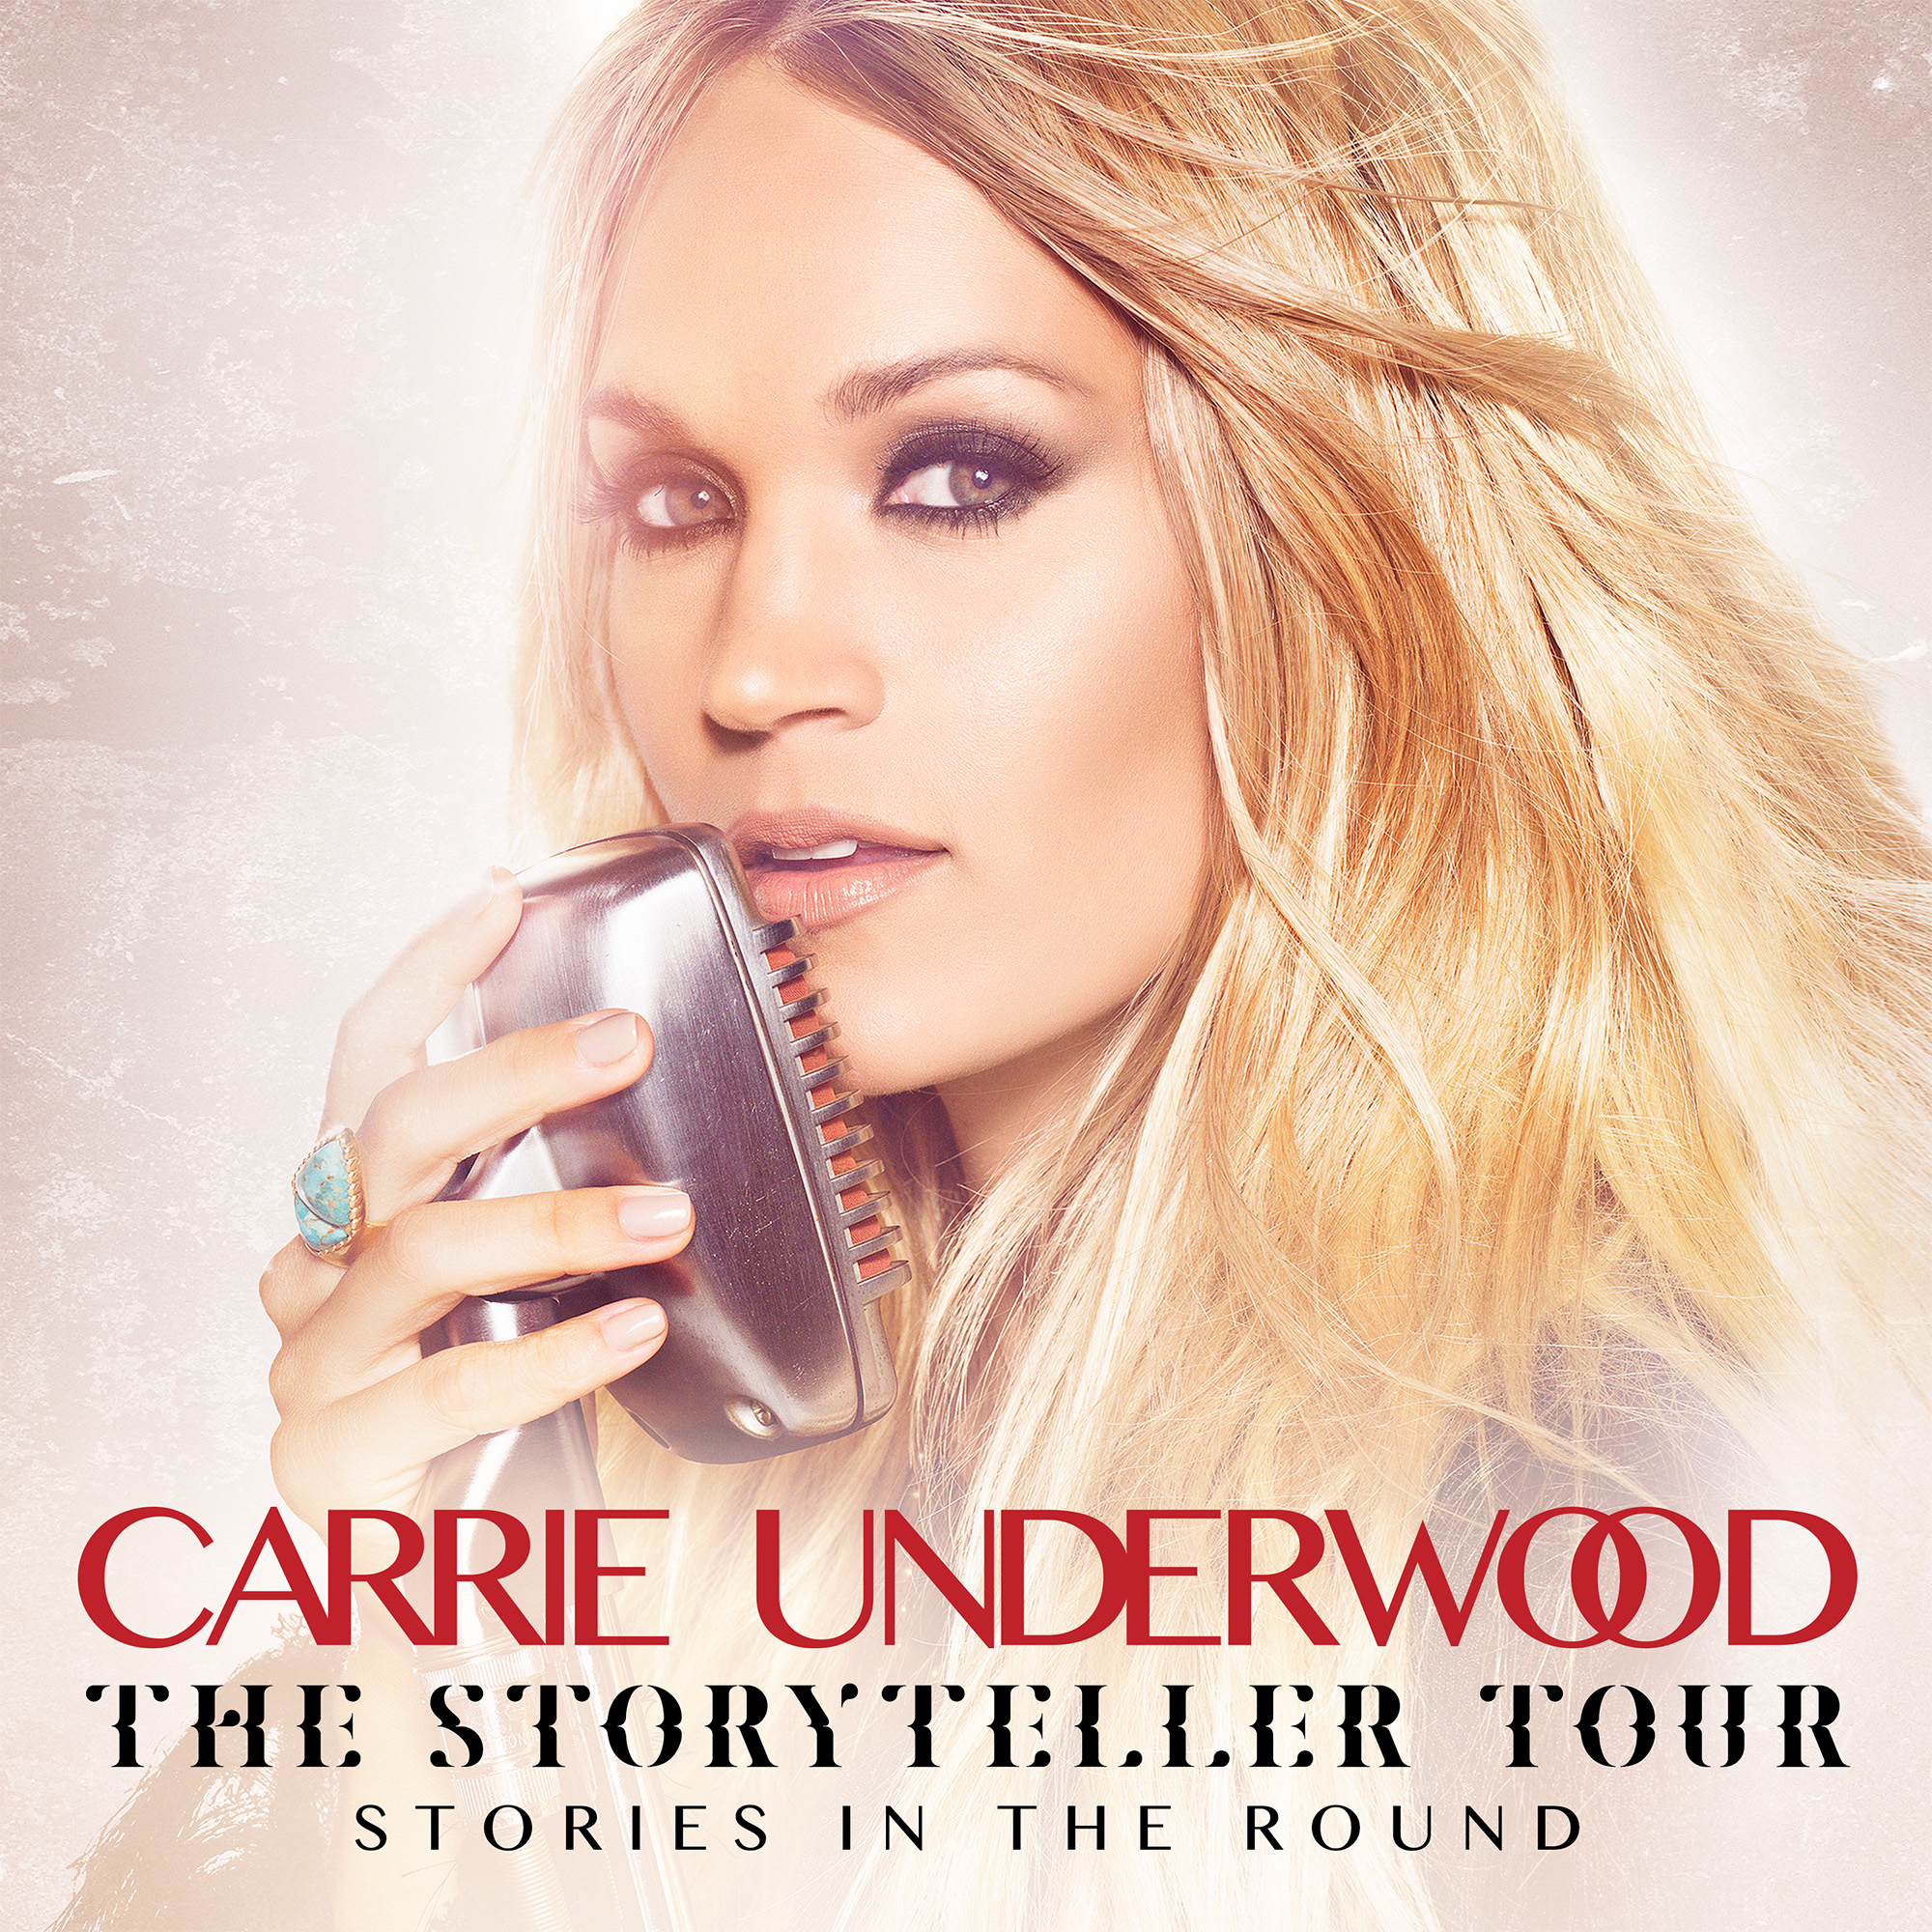 CARRIEUNDERWOOD_SOCIAL